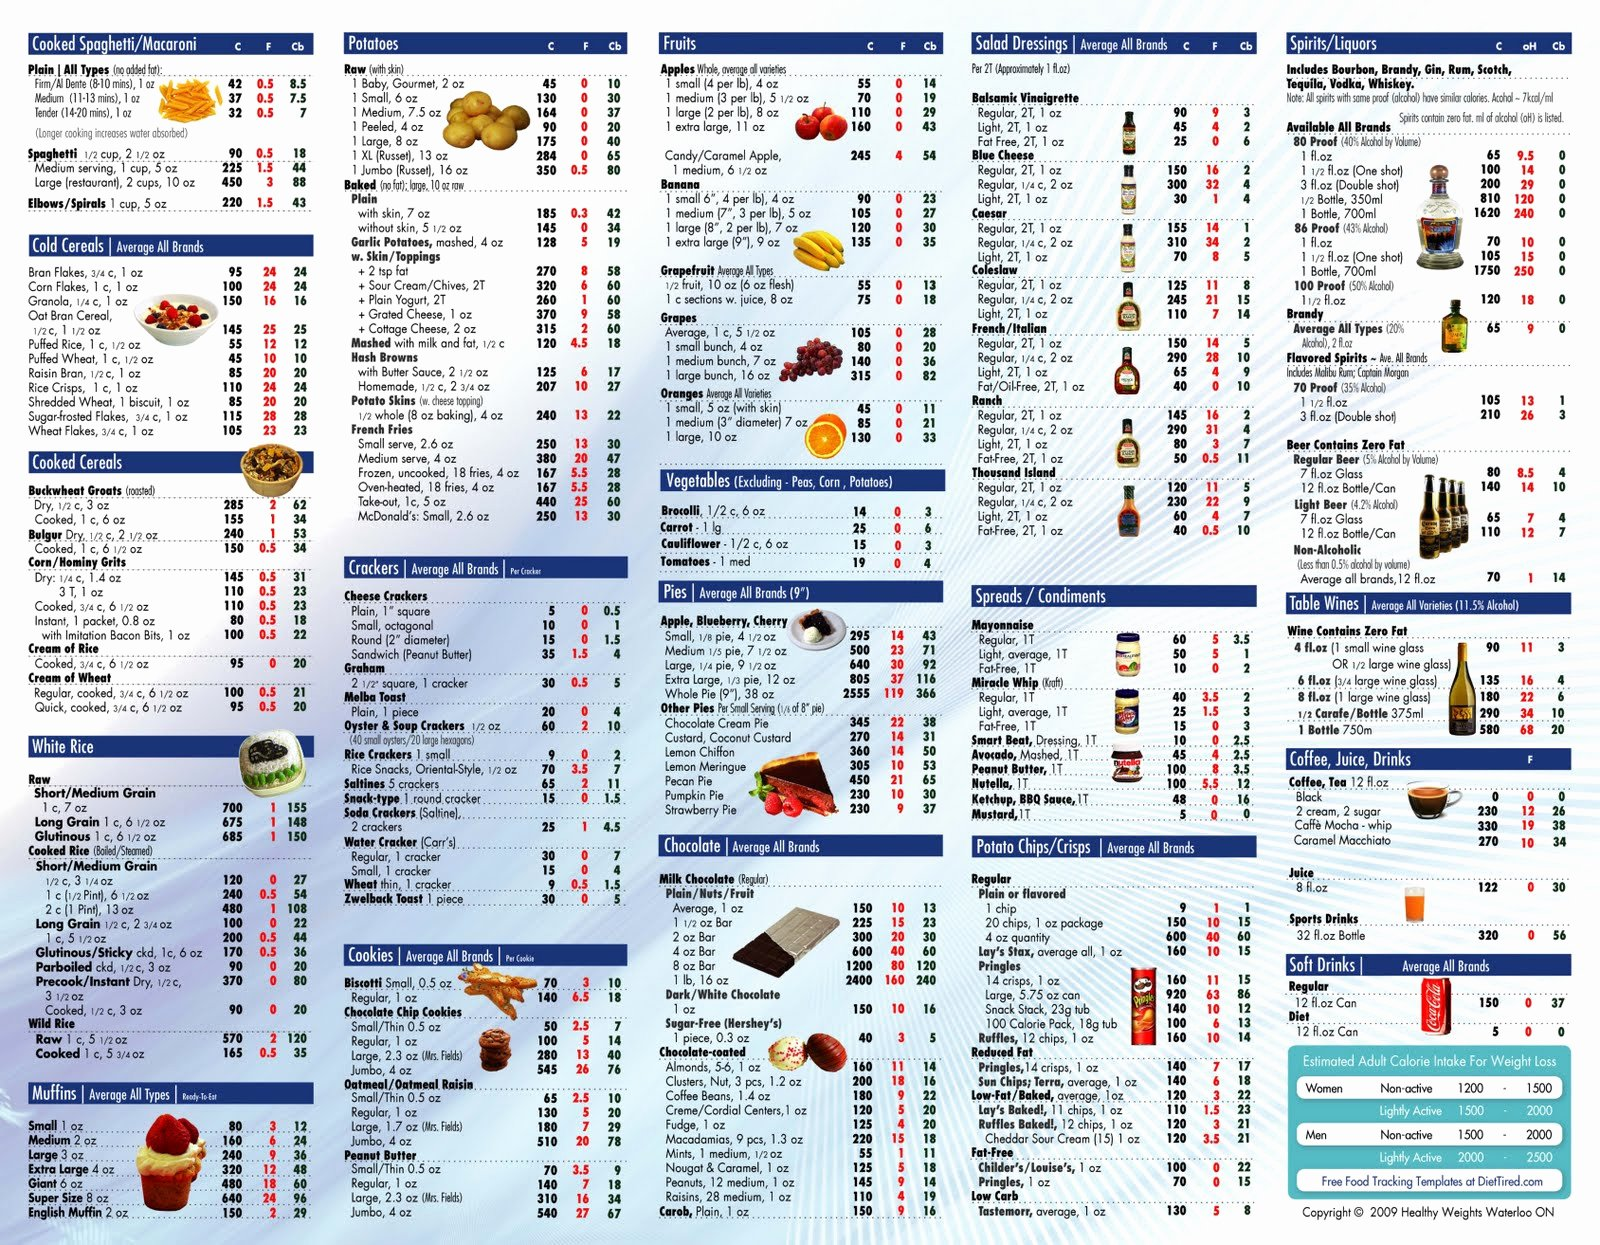 Calories In All Foods Chart Best Of Food Calorie Table